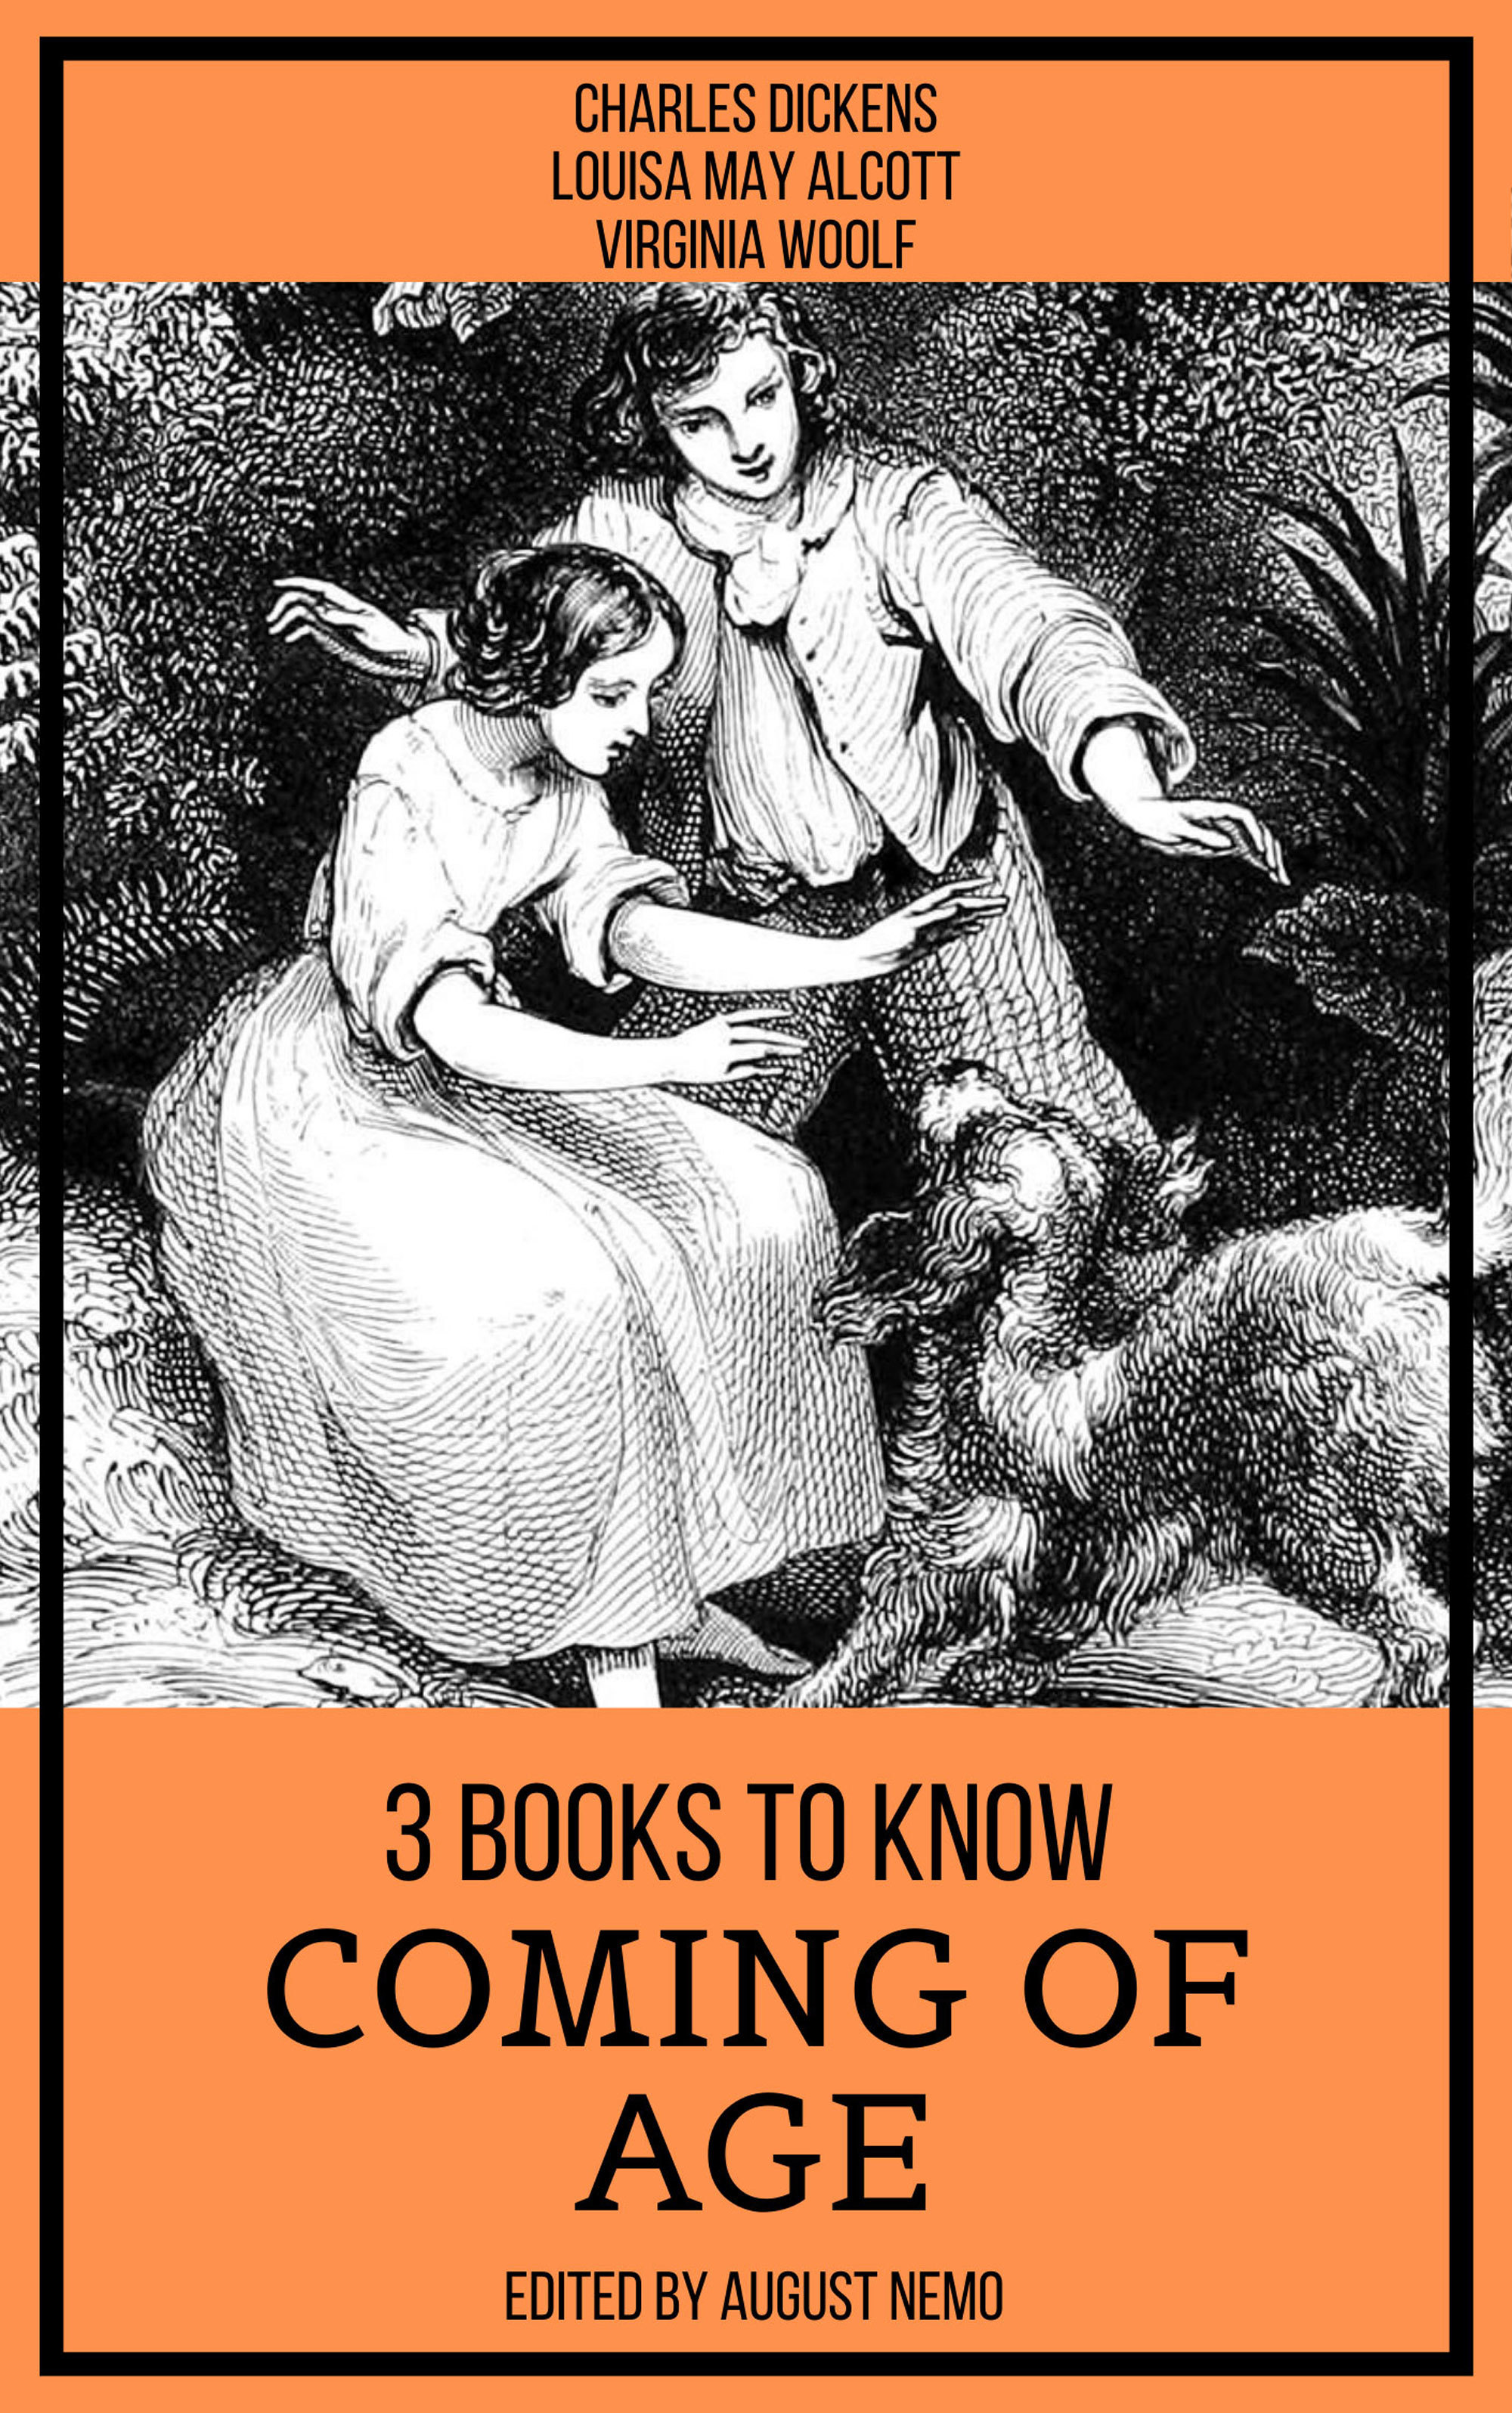 цена на Charles Dickens 3 books to know Coming of Age